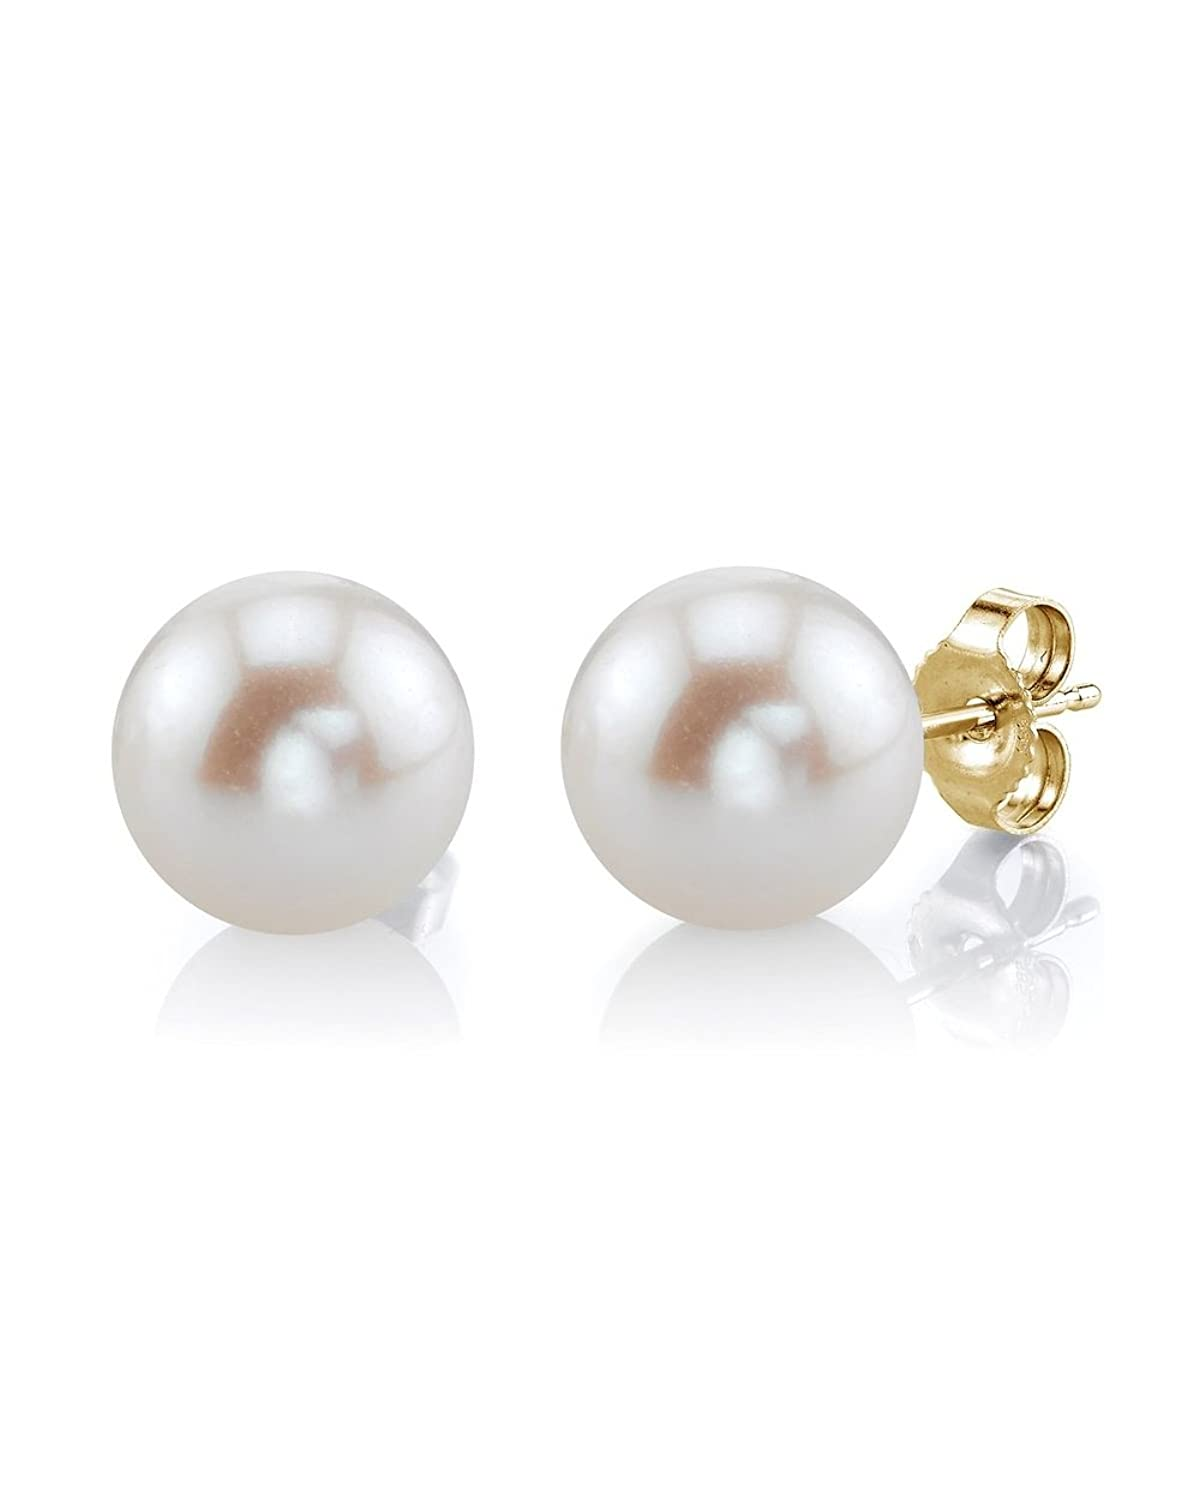 THE PEARL SOURCE 14K Gold AAA Quality Round White Freshwater Cultured Pearl Stud Earrings for Women